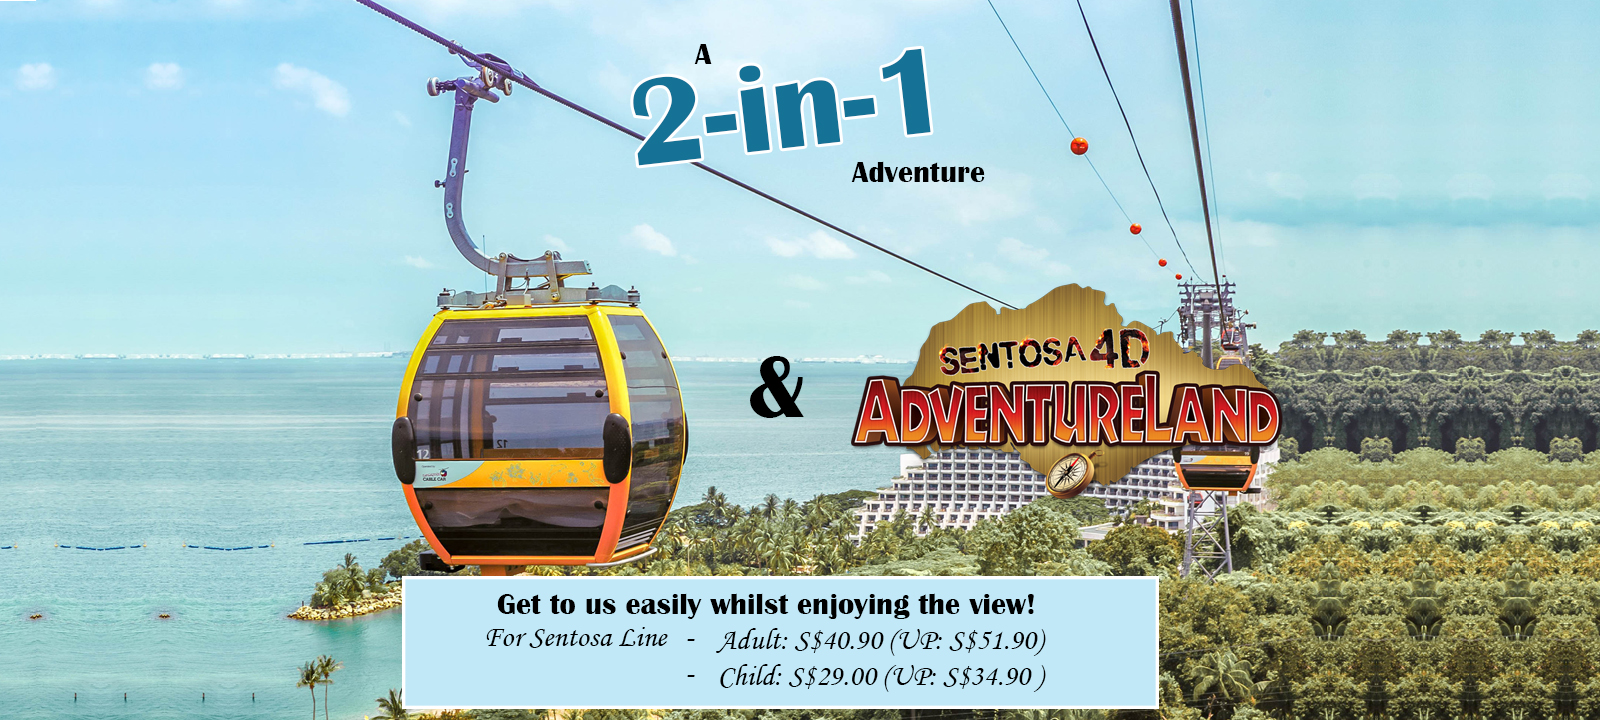 2-in-1 theme park offer Sentosa line + adventureland adult S$40.90 and child S$29